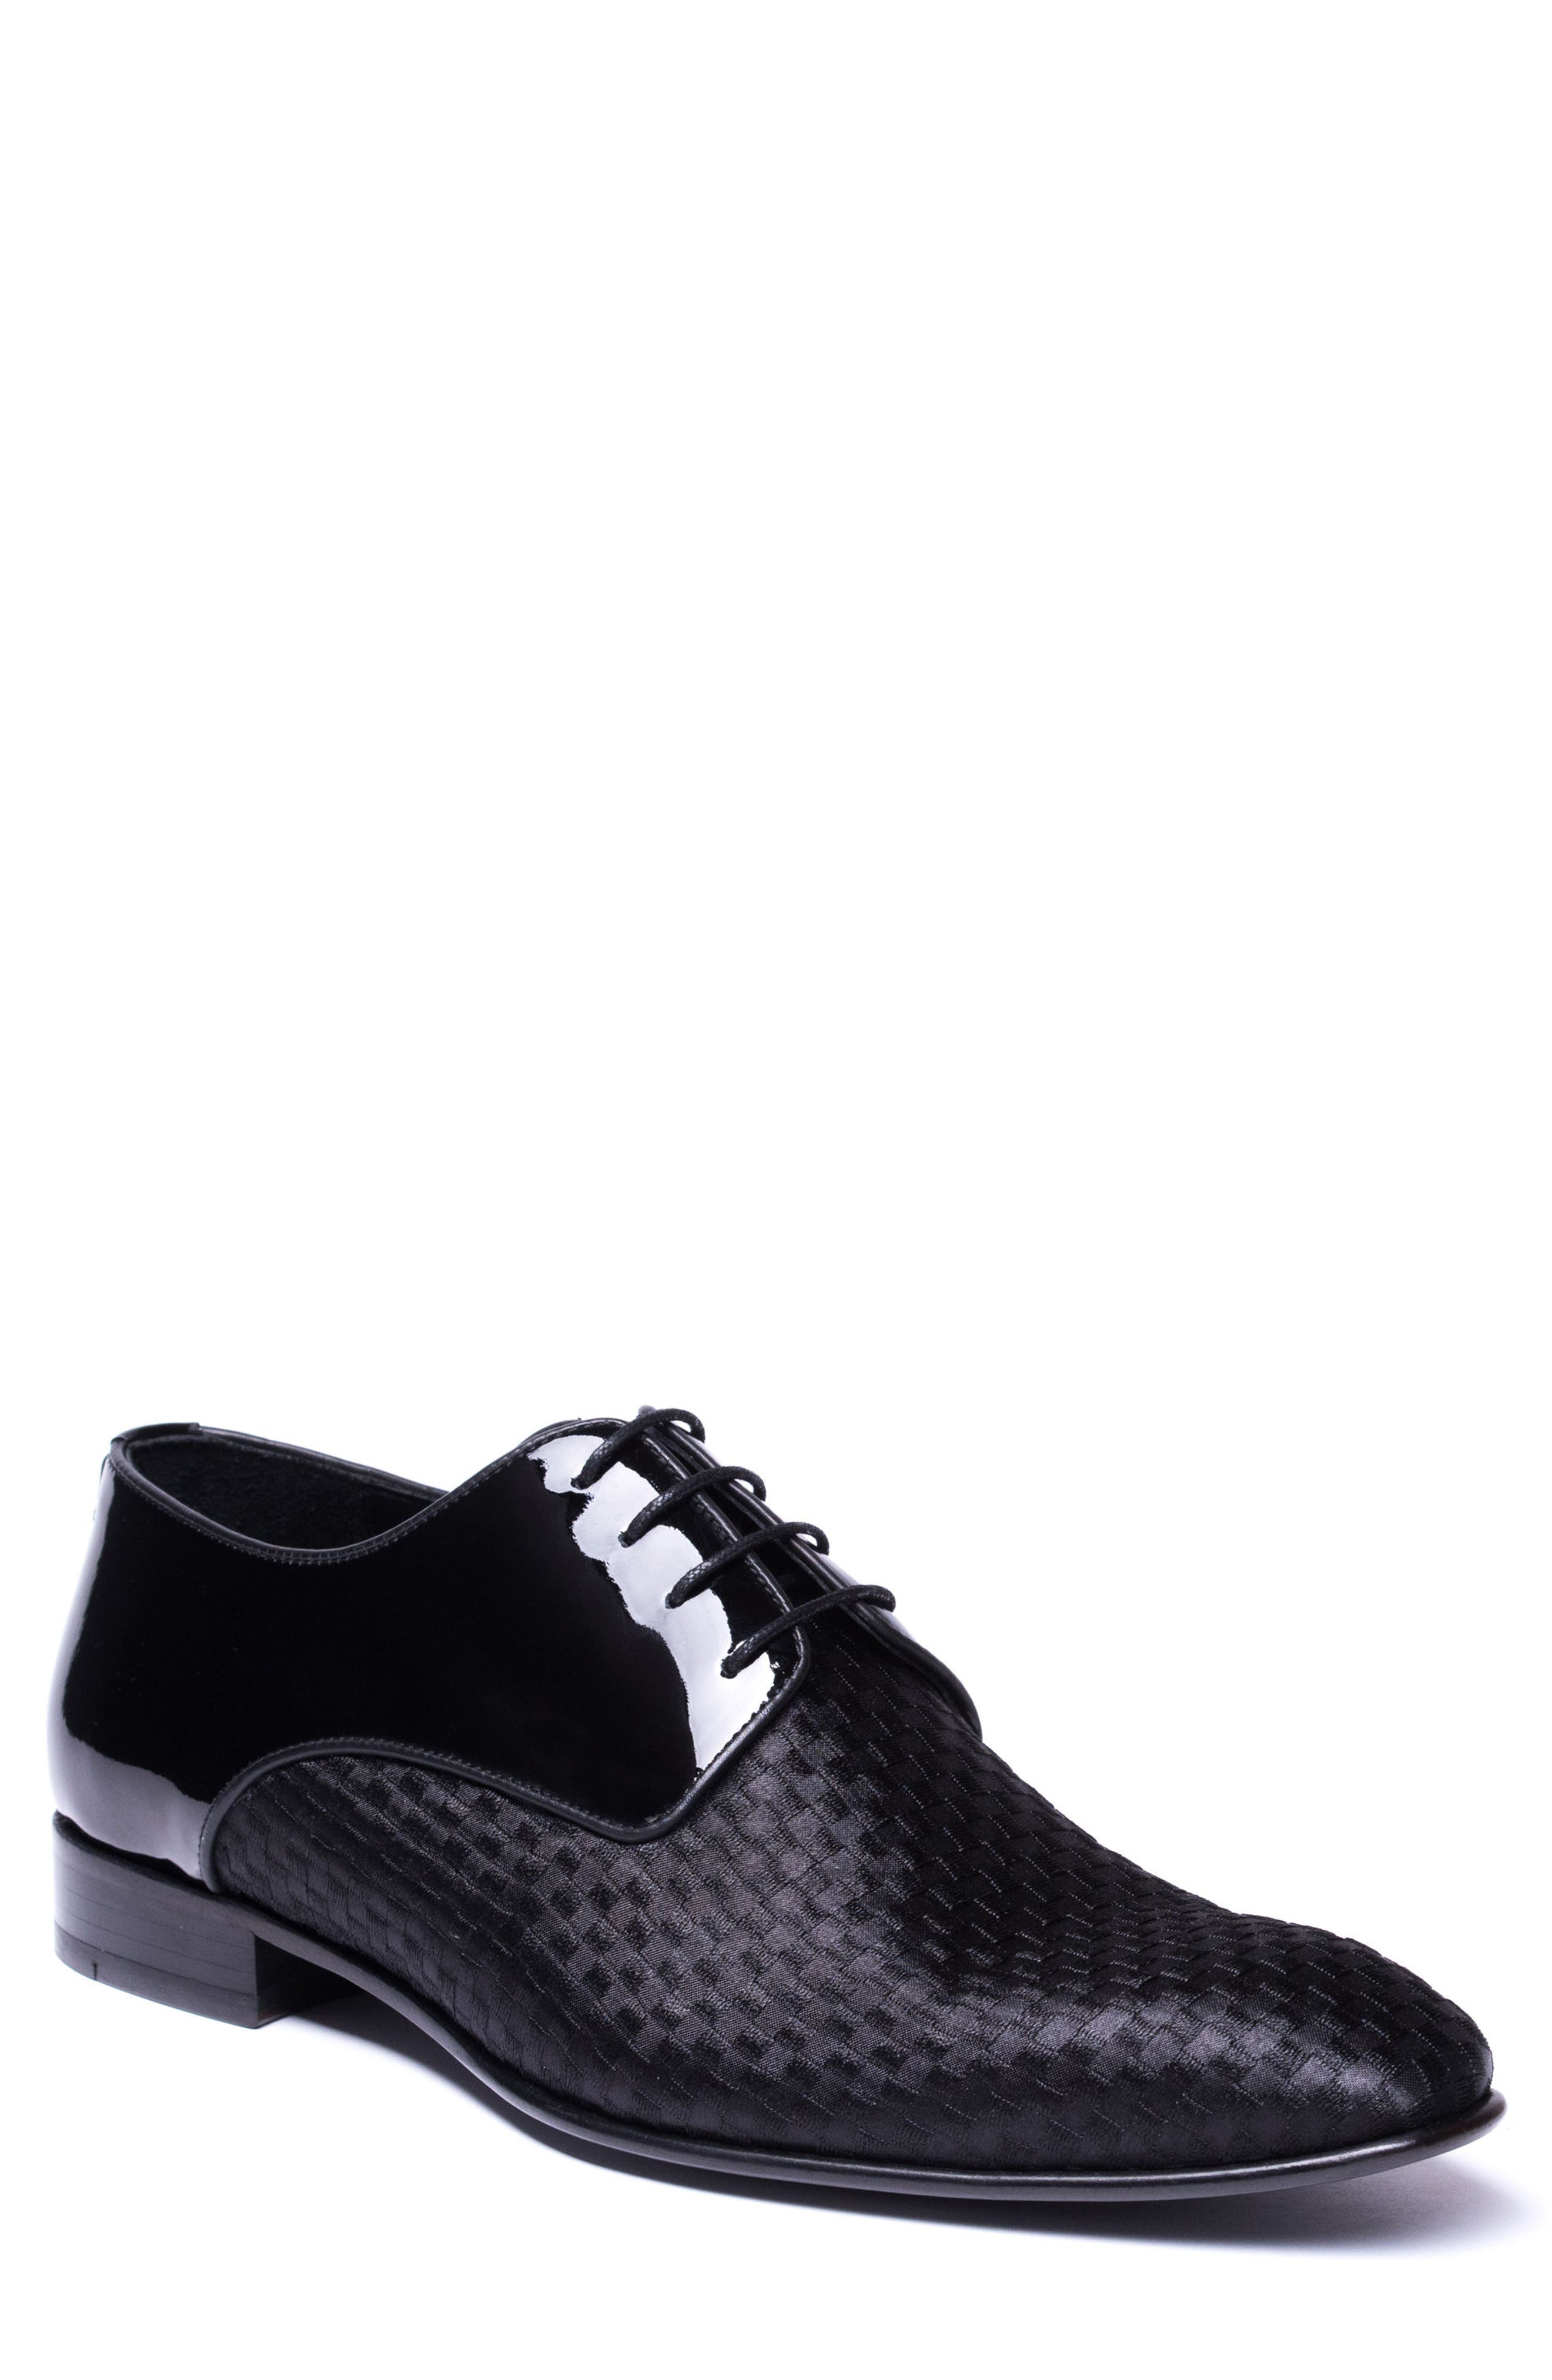 JARED LANG,                             Marco Checkerboard Derby,                             Main thumbnail 1, color,                             BLACK LEATHER